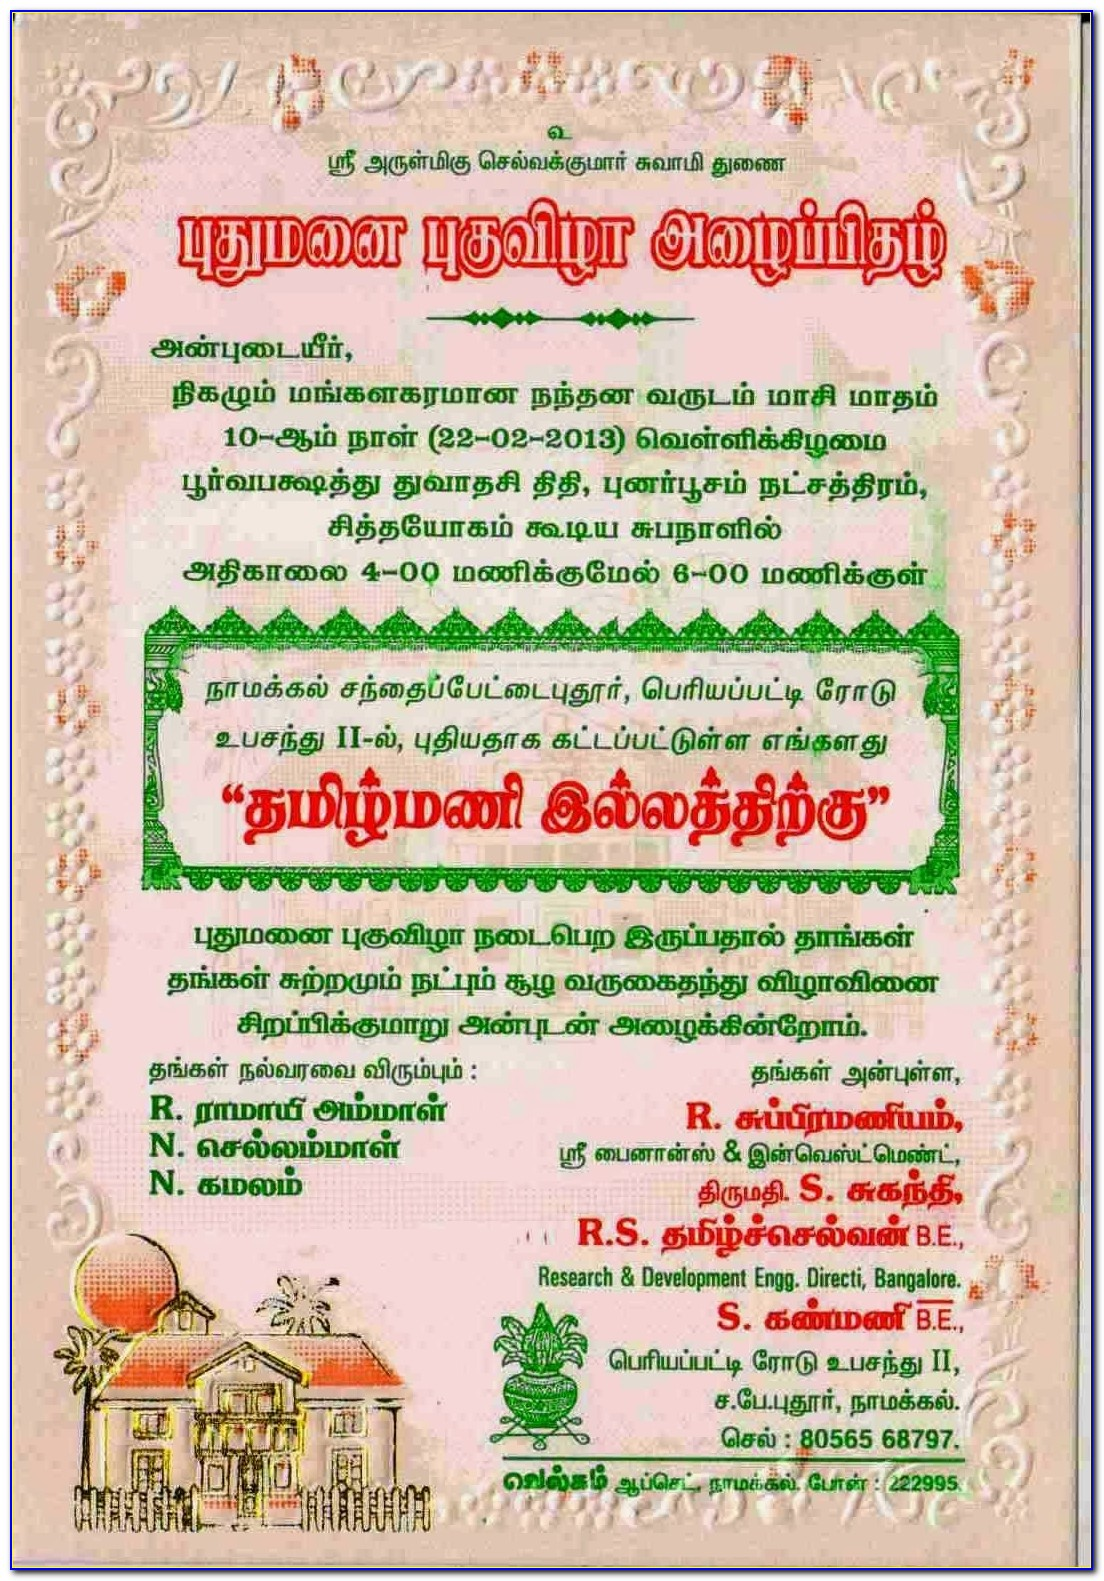 It's All Abt Tamil: December 2013 With Tamil Housewarming Invitation